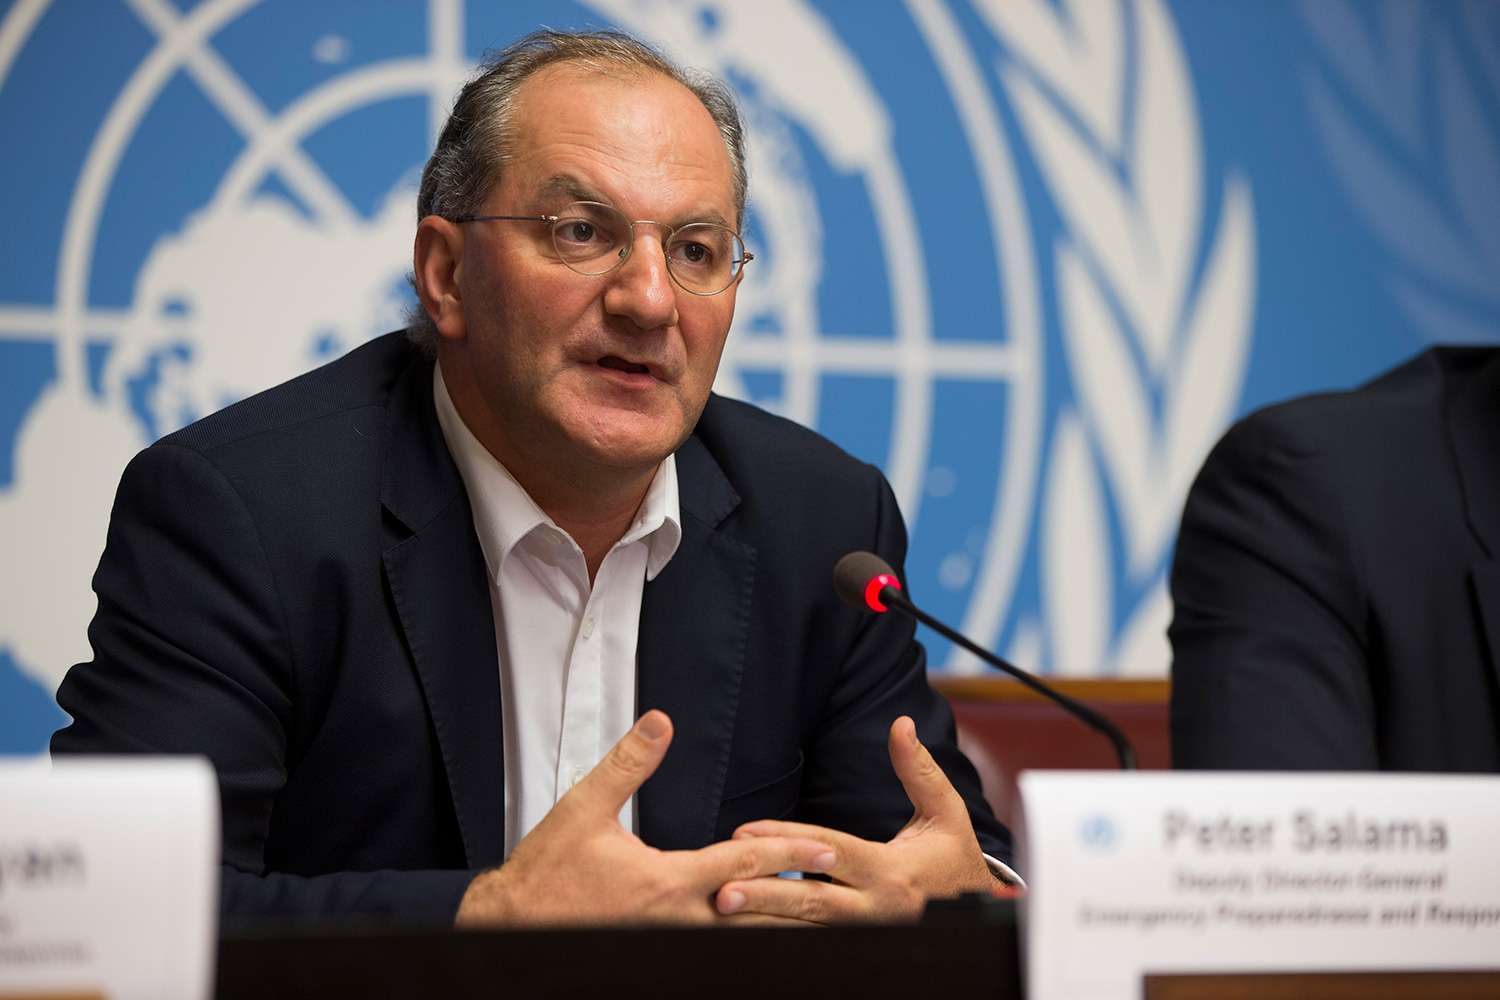 Press conference photograph of Peter Salama, Executive Director, Universal Health Coverage / Life Course at the World Health Organization.